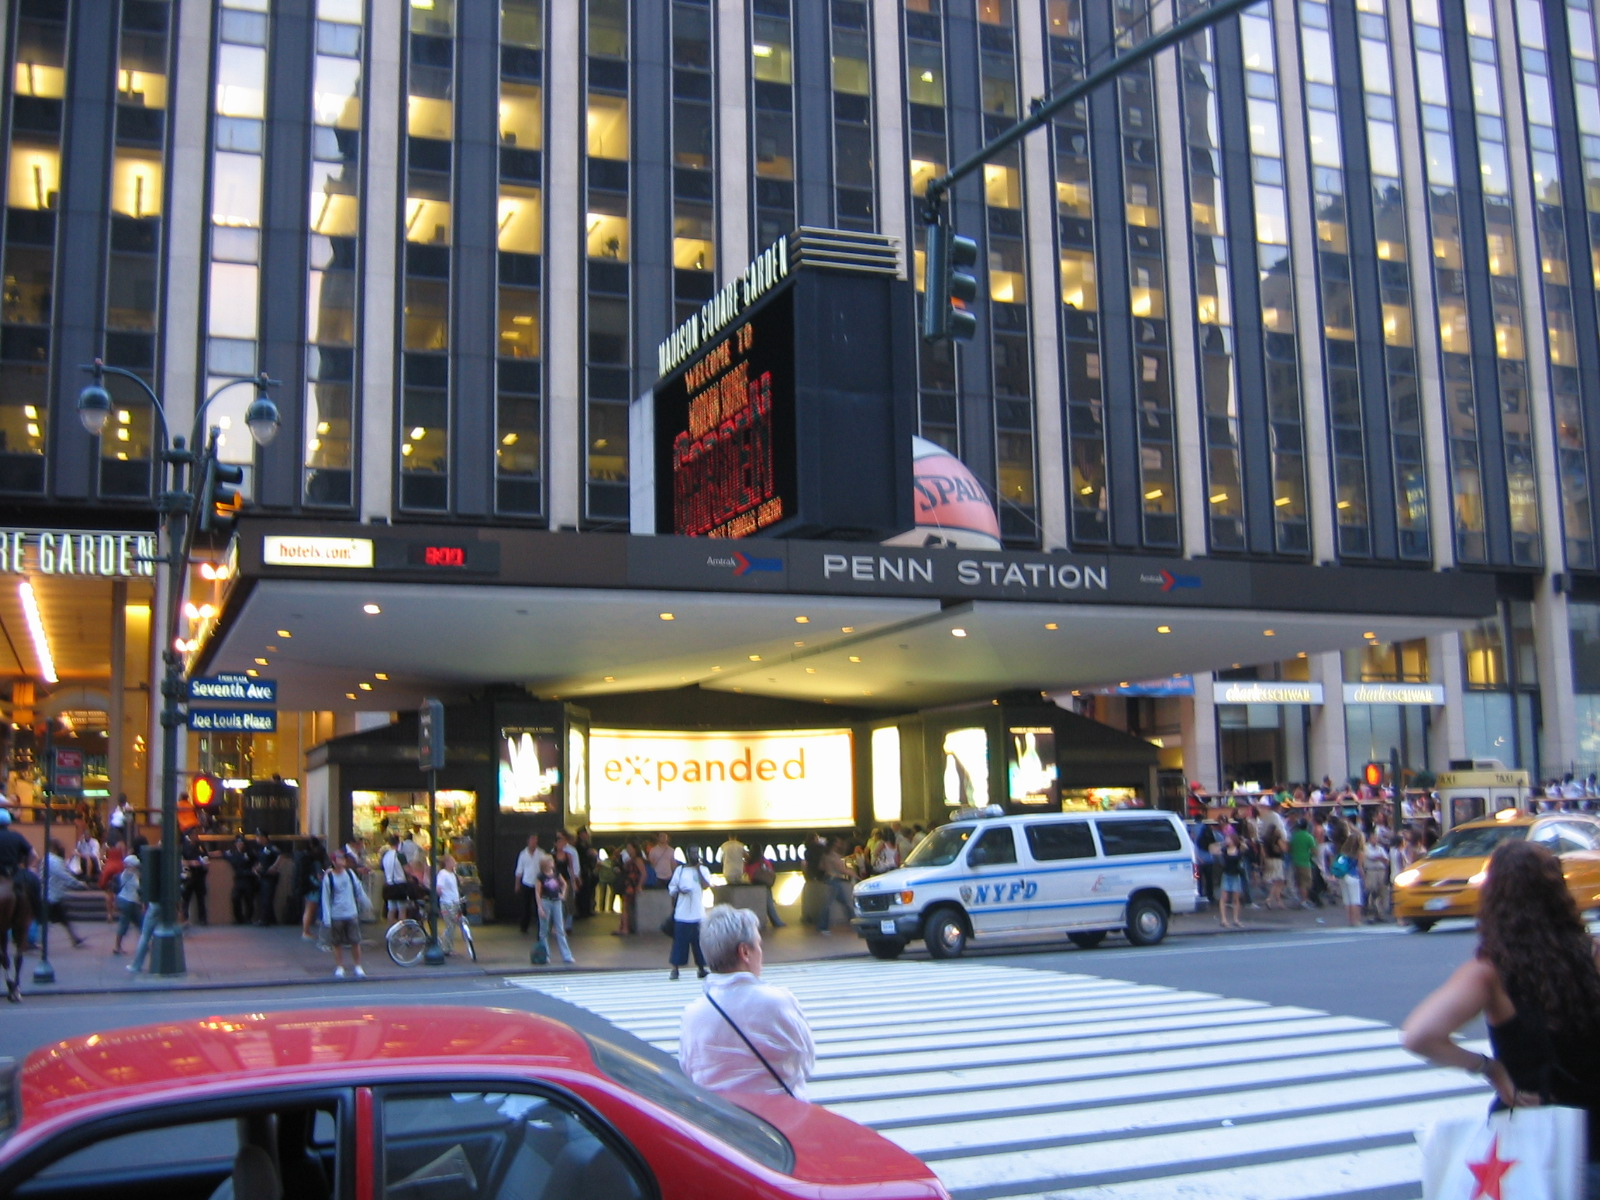 Penn Station NYC main entrance Journeying across NYC on the first day of my summer internship